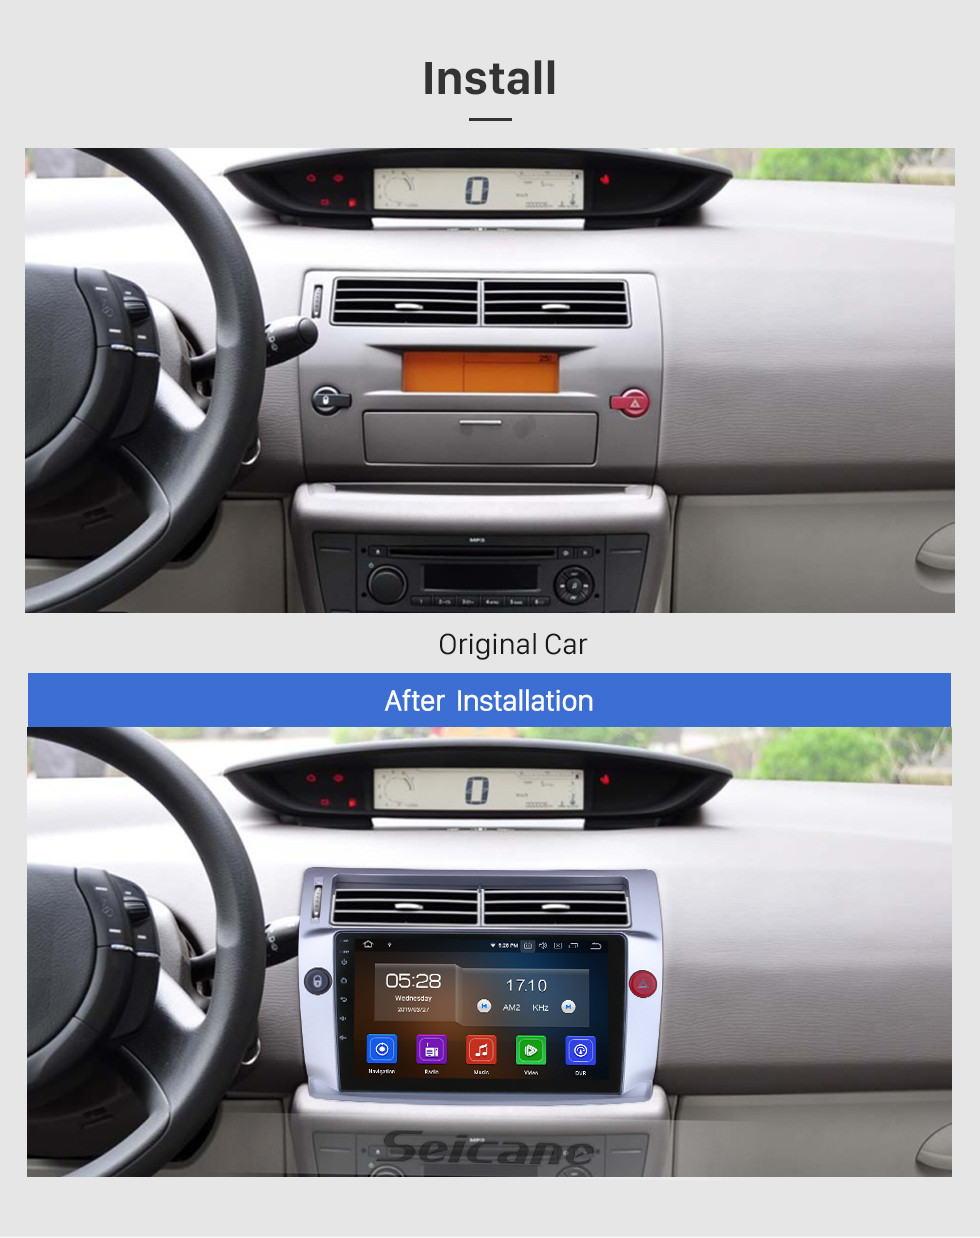 Seicane HD Touchscreen for 2009 Citroen Old C-Quatre Radio Android 10.0 9 inch GPS Navigation System Bluetooth Carplay support DAB+ DVR